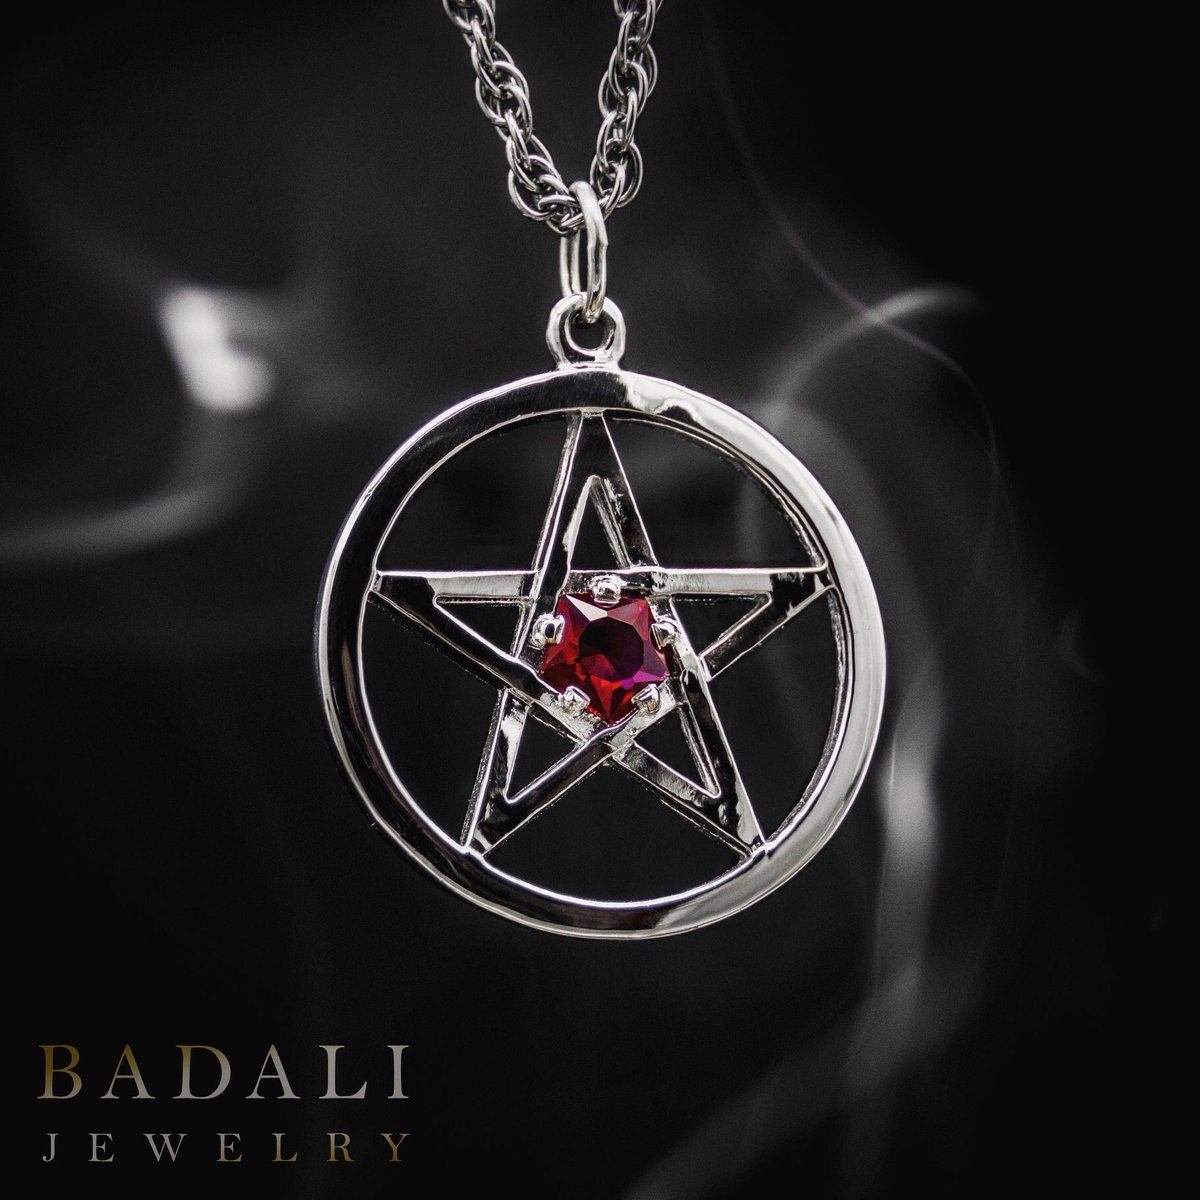 Officially licensed Dresden Files Jewelry Collection available at https://t.co/ZxGEogycVh — @longshotauthor @PadawanMolly @HarriedWizard  #JimButcher #TheDresdenFiles #DresdenFiles https://t.co/zwGMOXU8OL